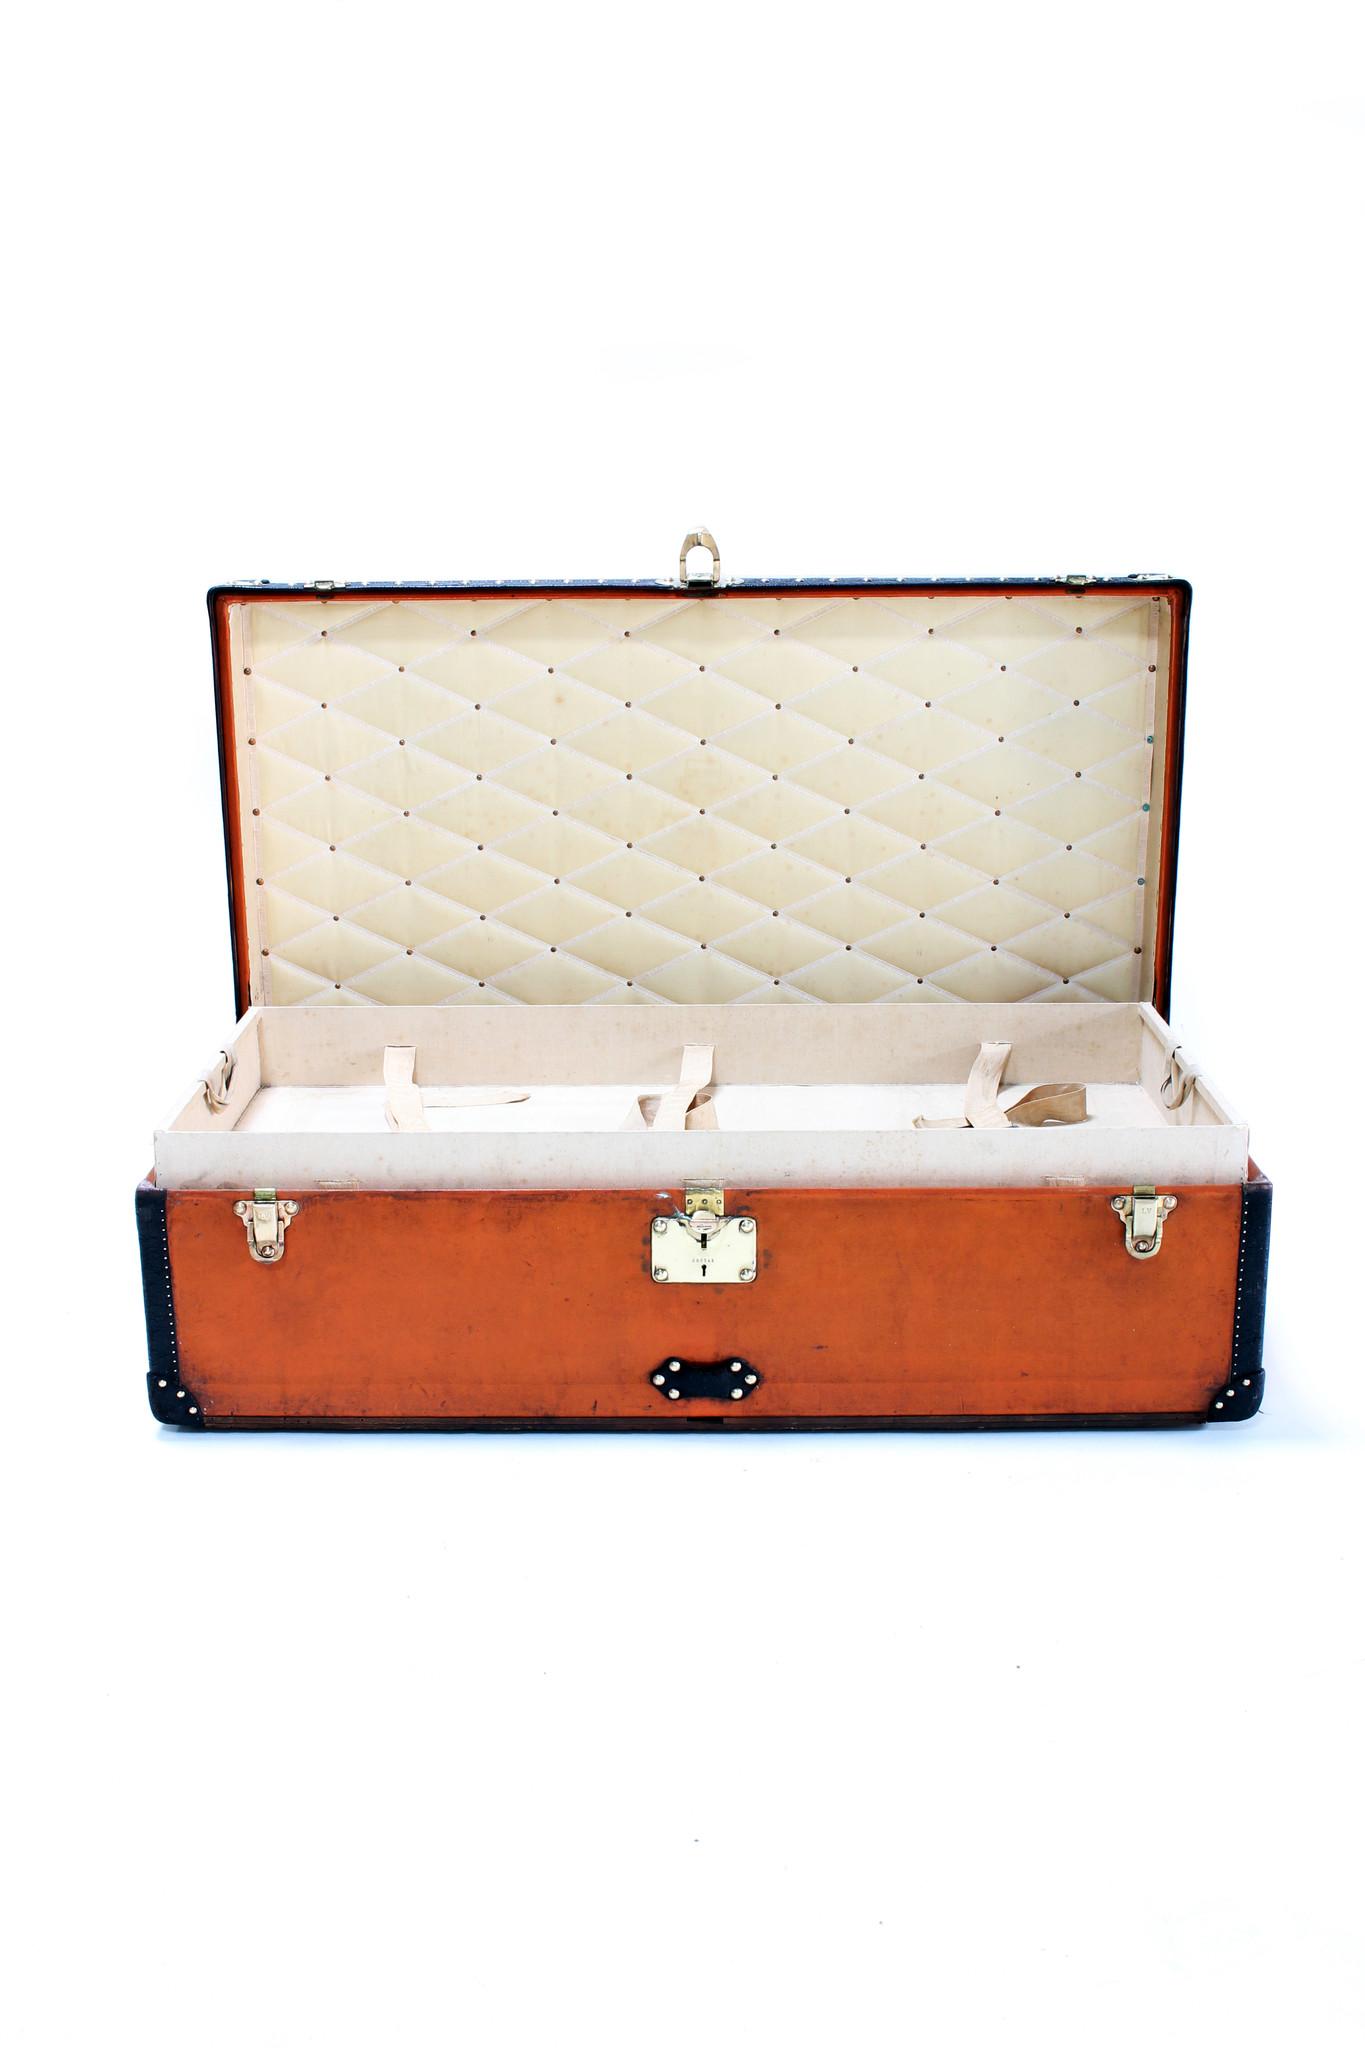 Louis Vuitton trunk silly cabin I Lovely orange